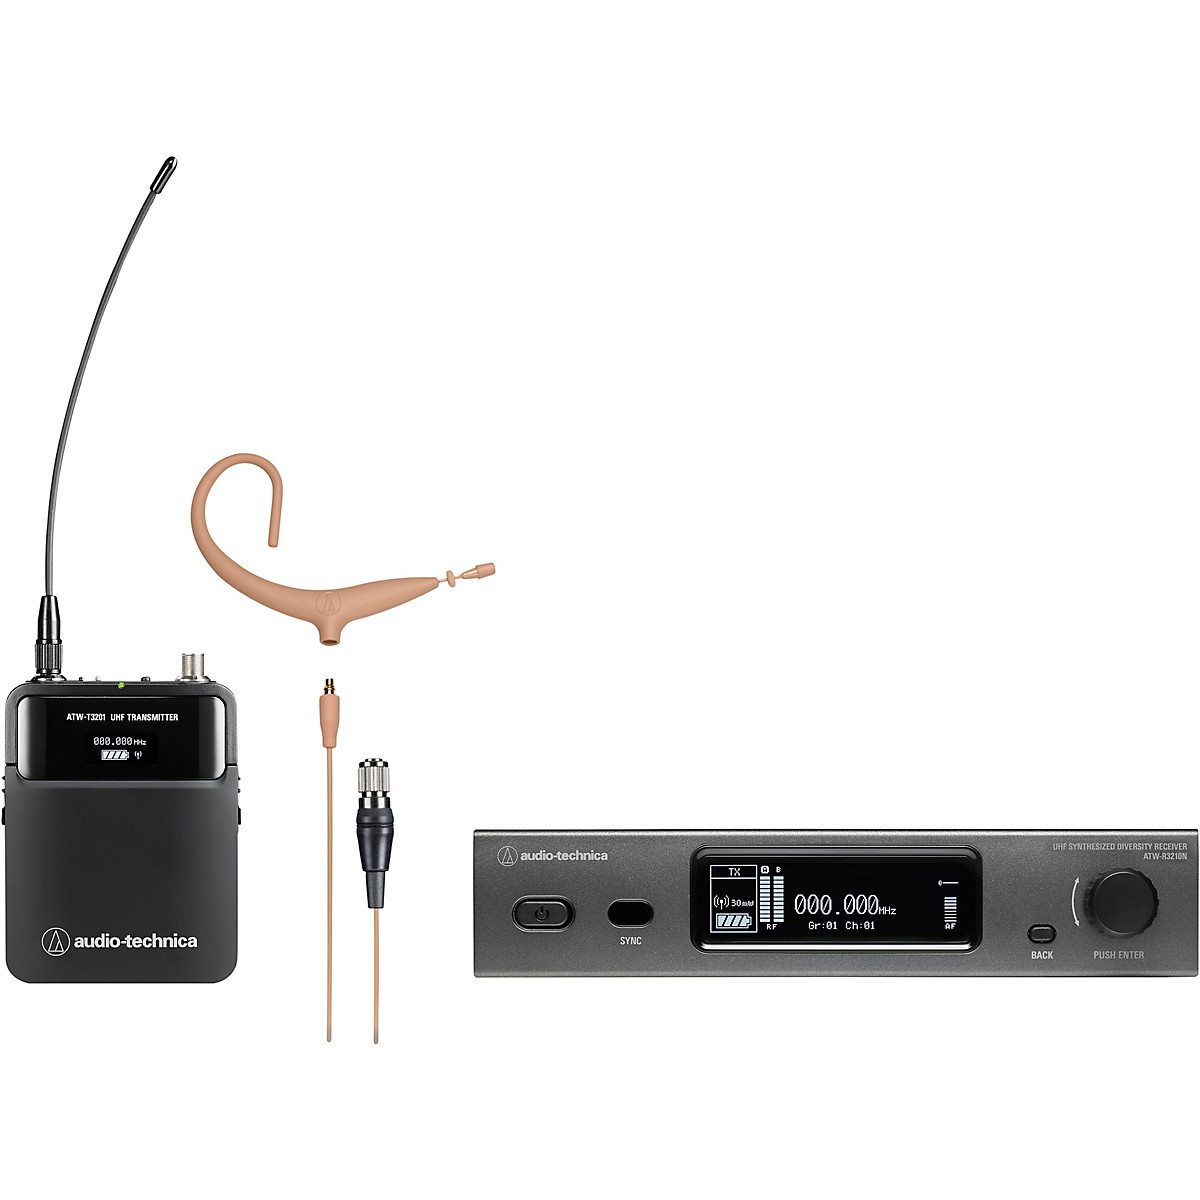 Audio-Technica 3000 Series (4th Gen) Network Enabled UHF Wireless with BP893xcH-TH MicroEarset Omnidirectional Condenser Headworn Microphone